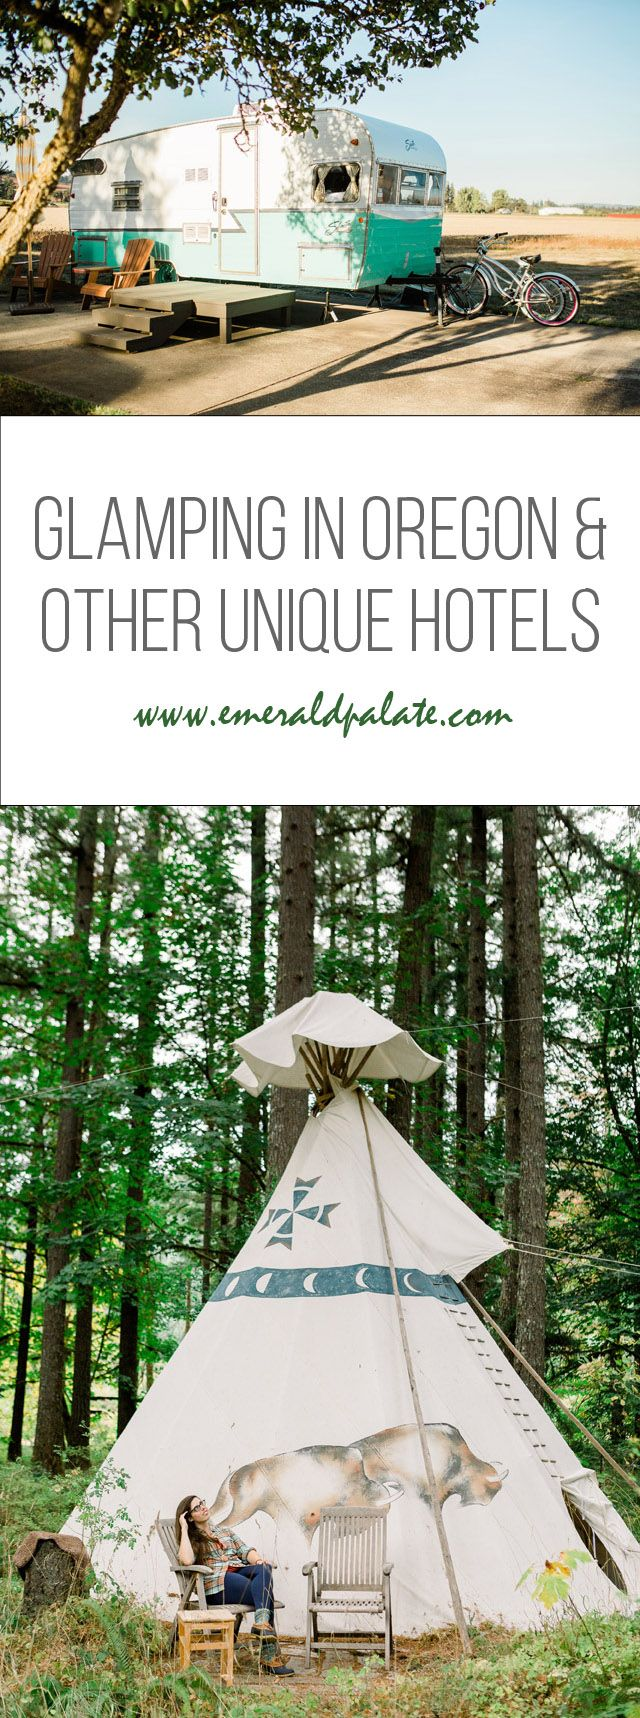 Glamping in Oregon Wine Nation & Different Distinctive Motels in Oregon